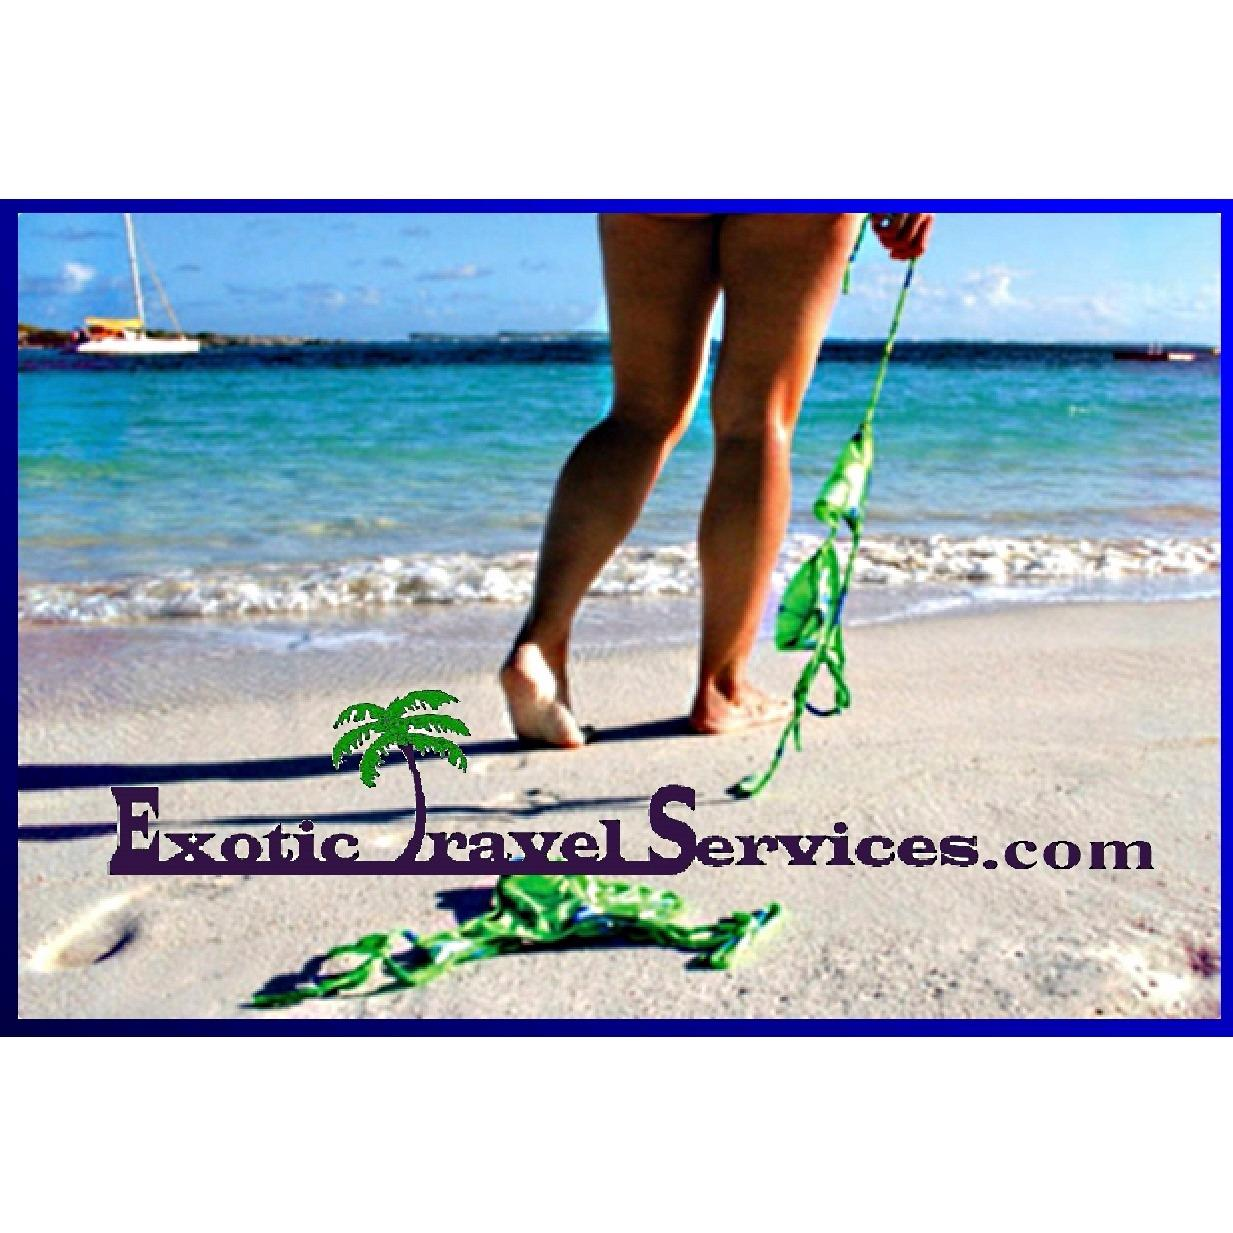 Exotic Travel Services Littleton Co